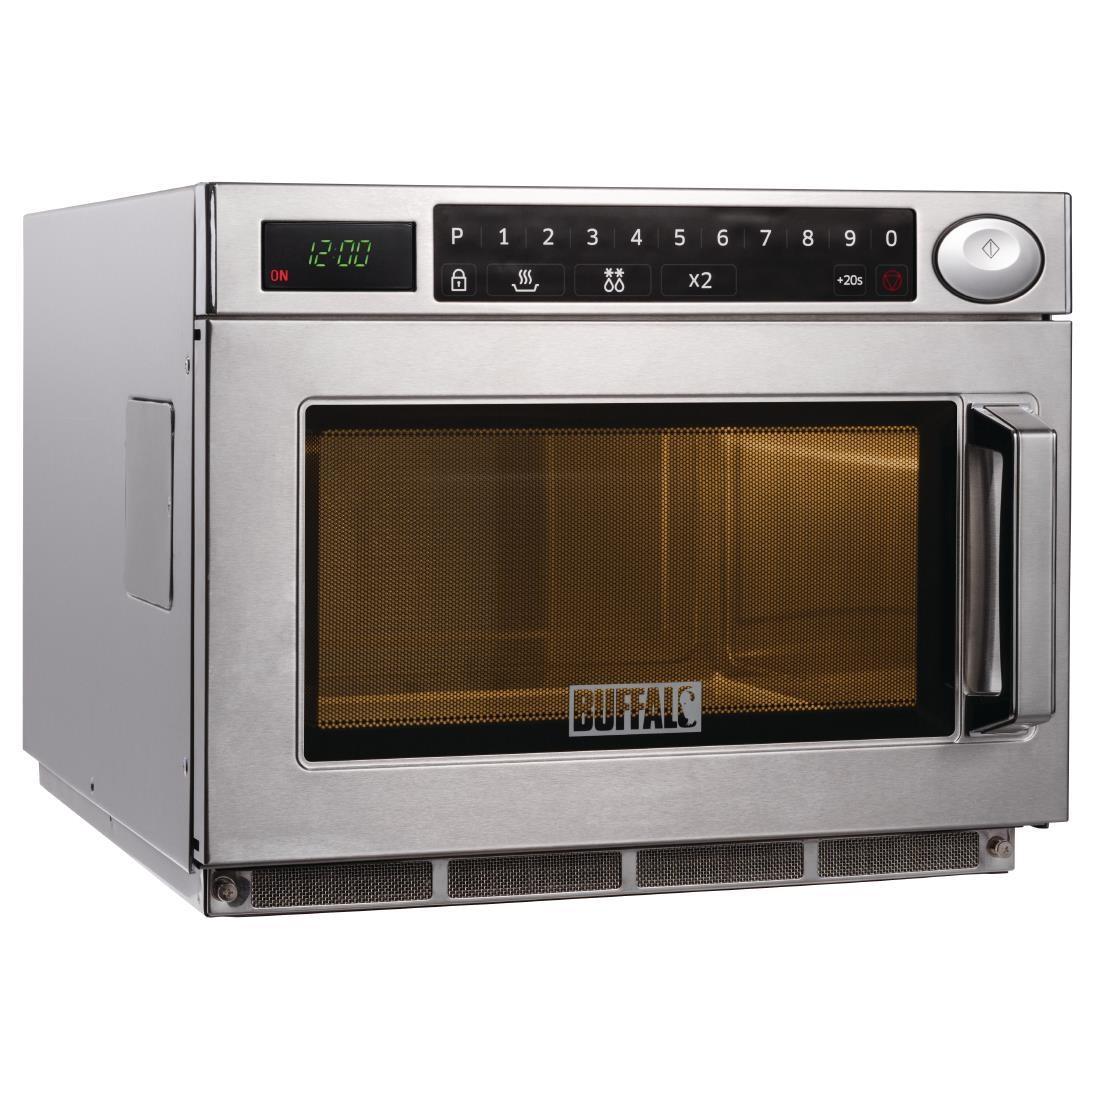 Reverse Microwave Oven: Buffalo GK641 Programmable 1500W Commercial Microwave